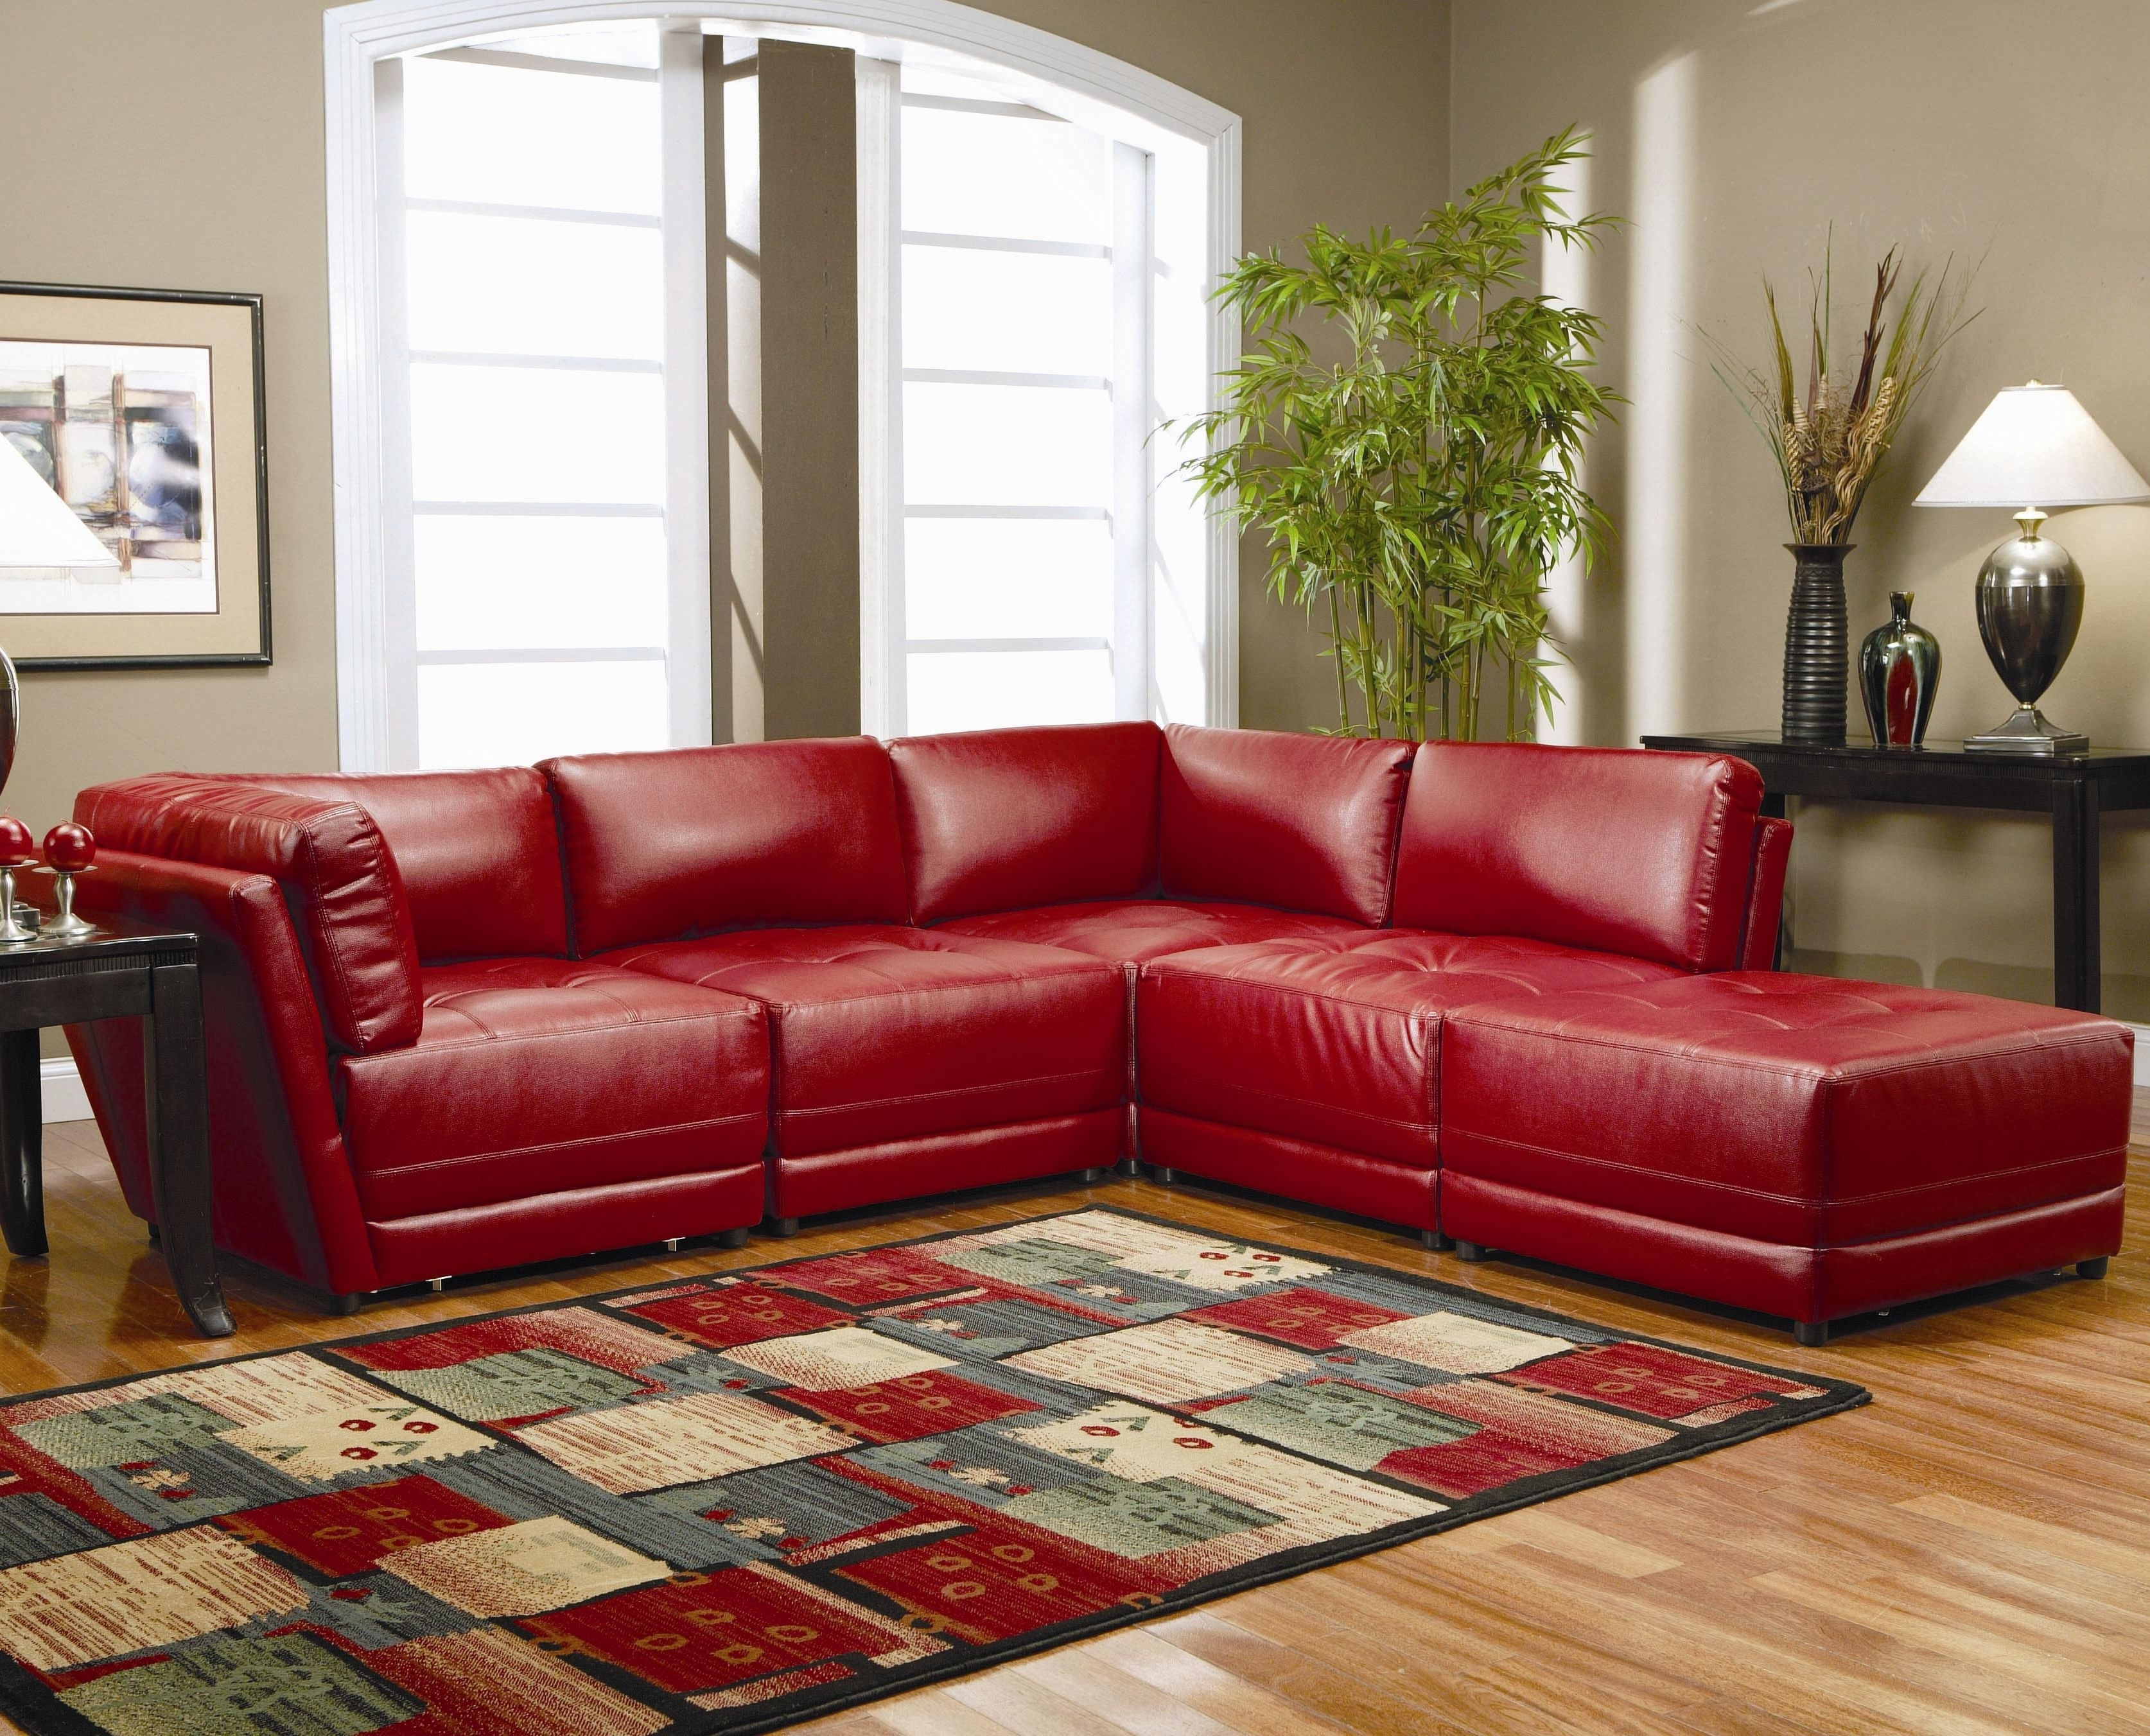 Leather Sofa Chaise | Aifaresidency Within Red Leather Sectionals With Chaise (View 5 of 10)